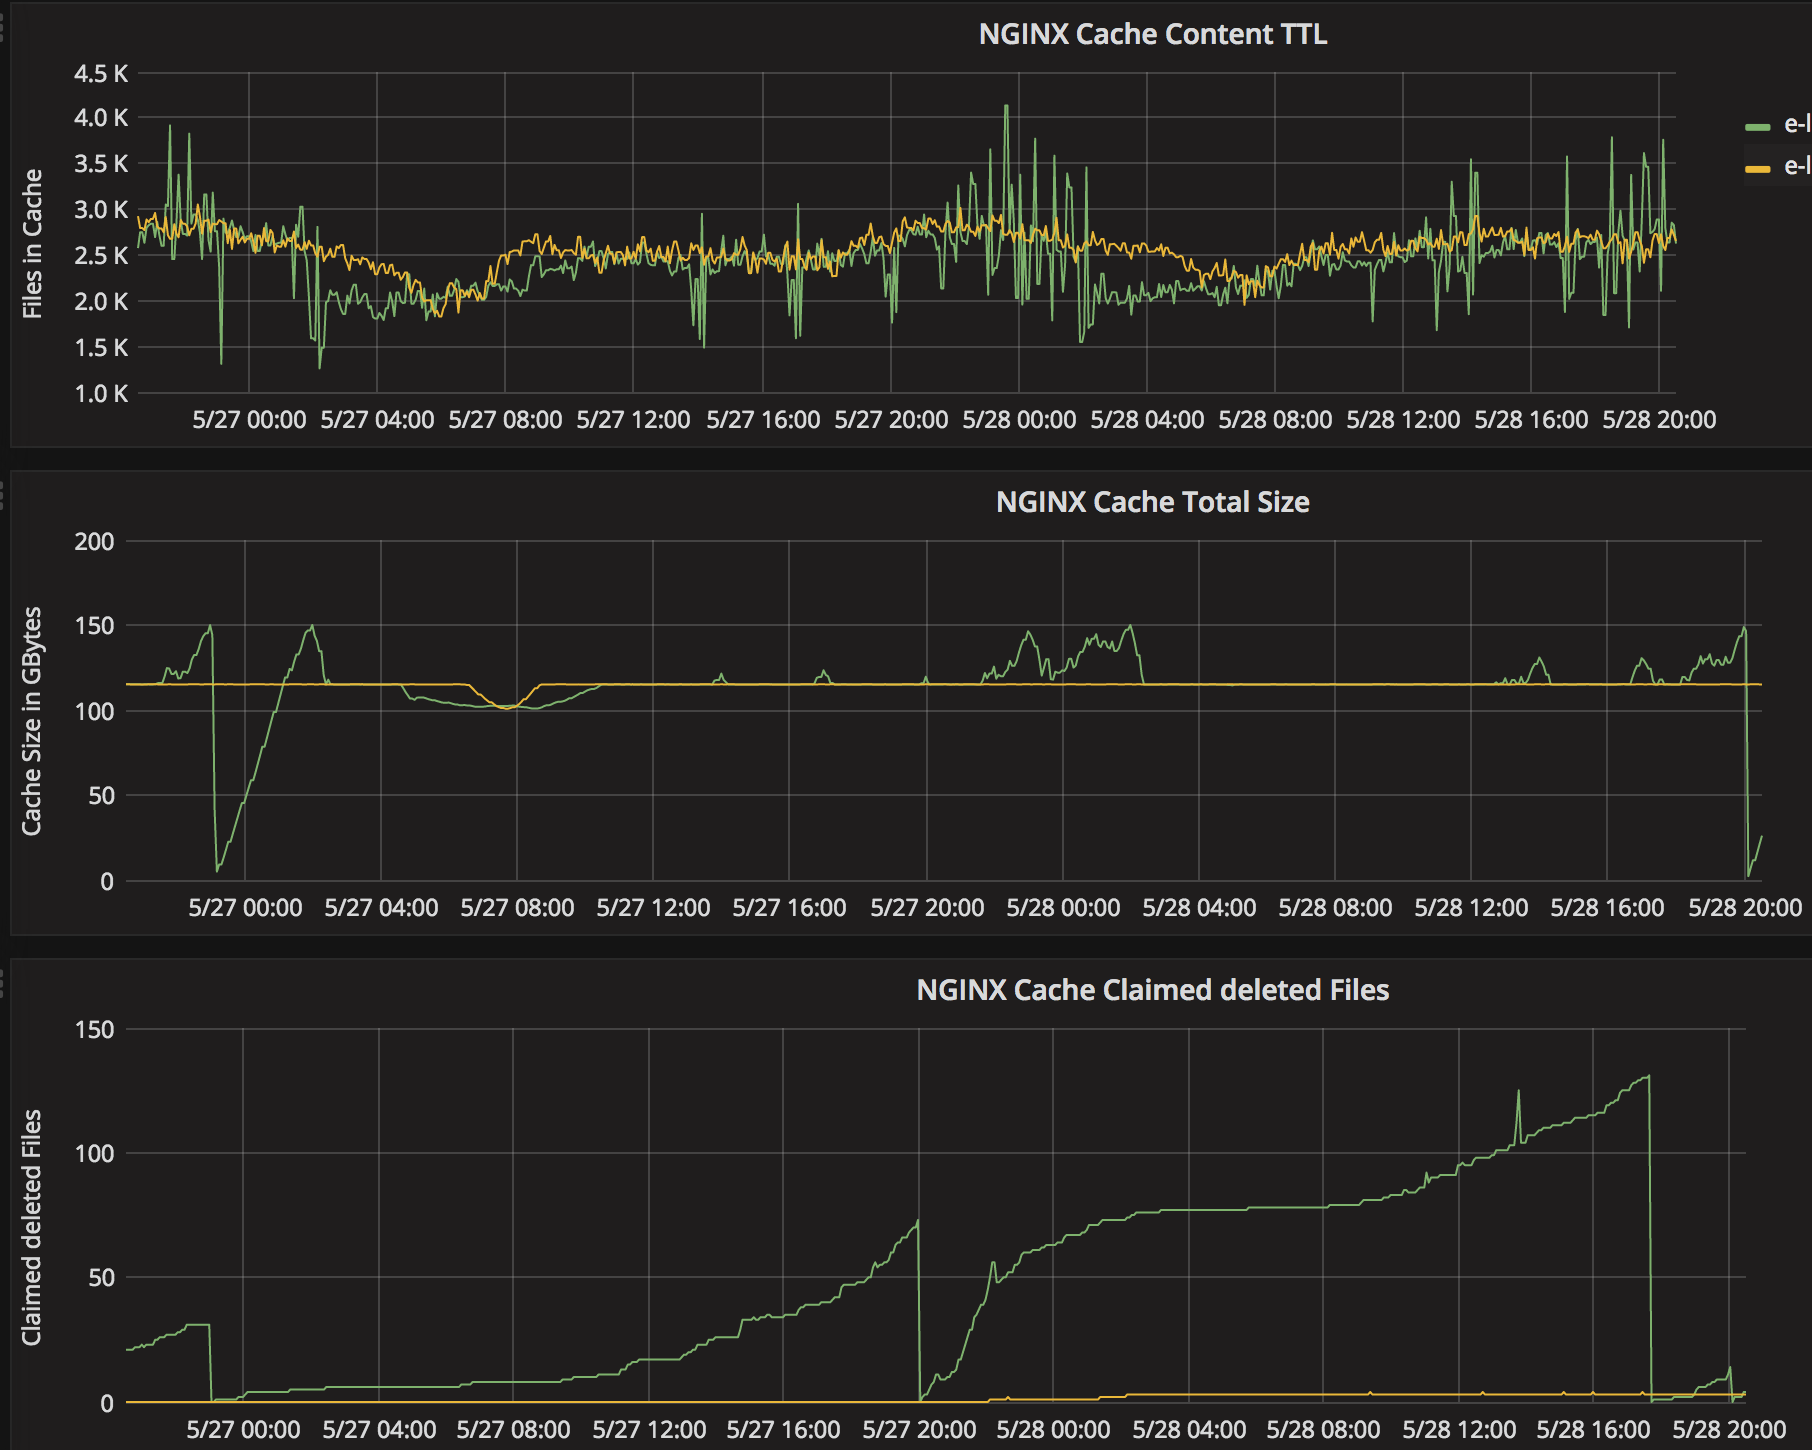 nginx-cache.png